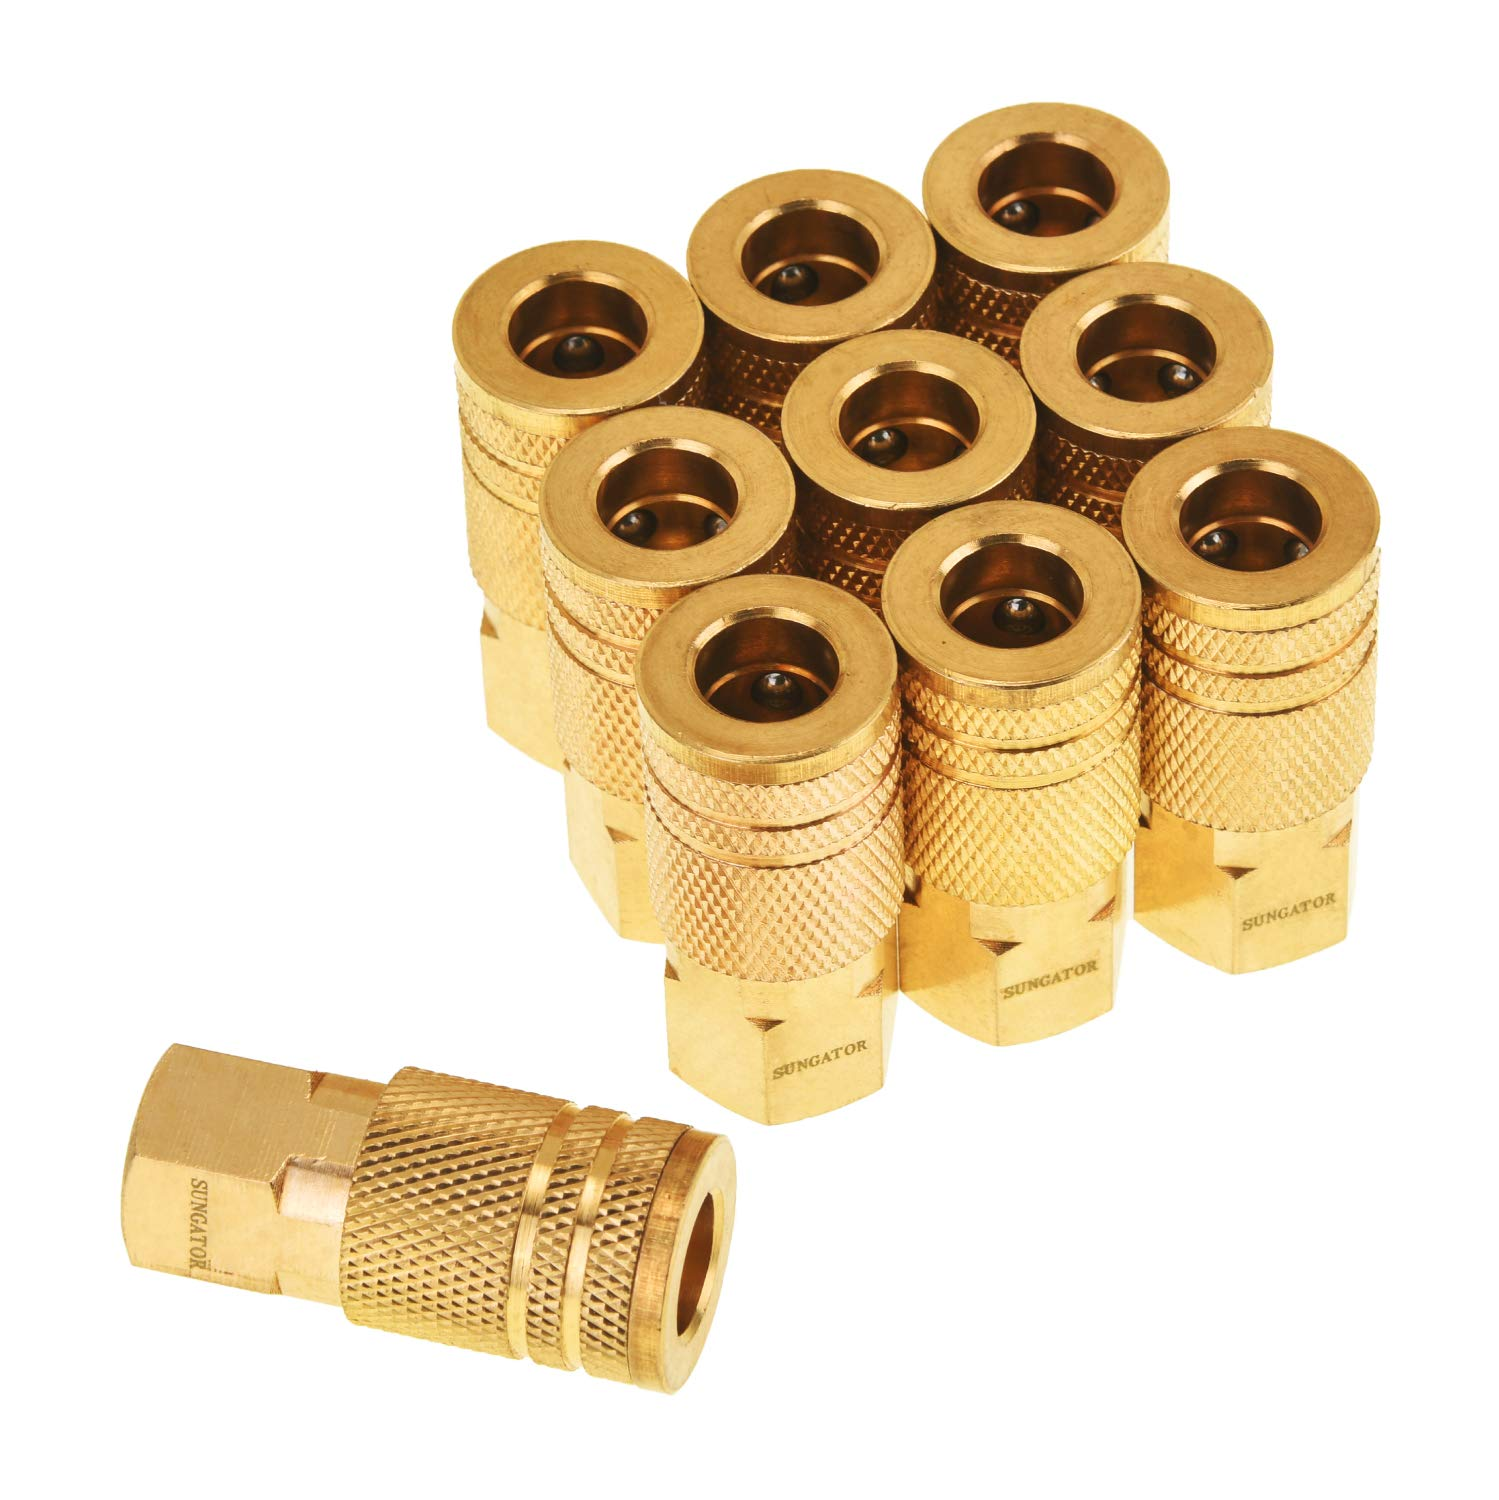 SUNGATOR 1/4-Inch Brass Female Industrial Coupler, 10-Pack NPT Female Quick Connect Air Coupler with Storage Case